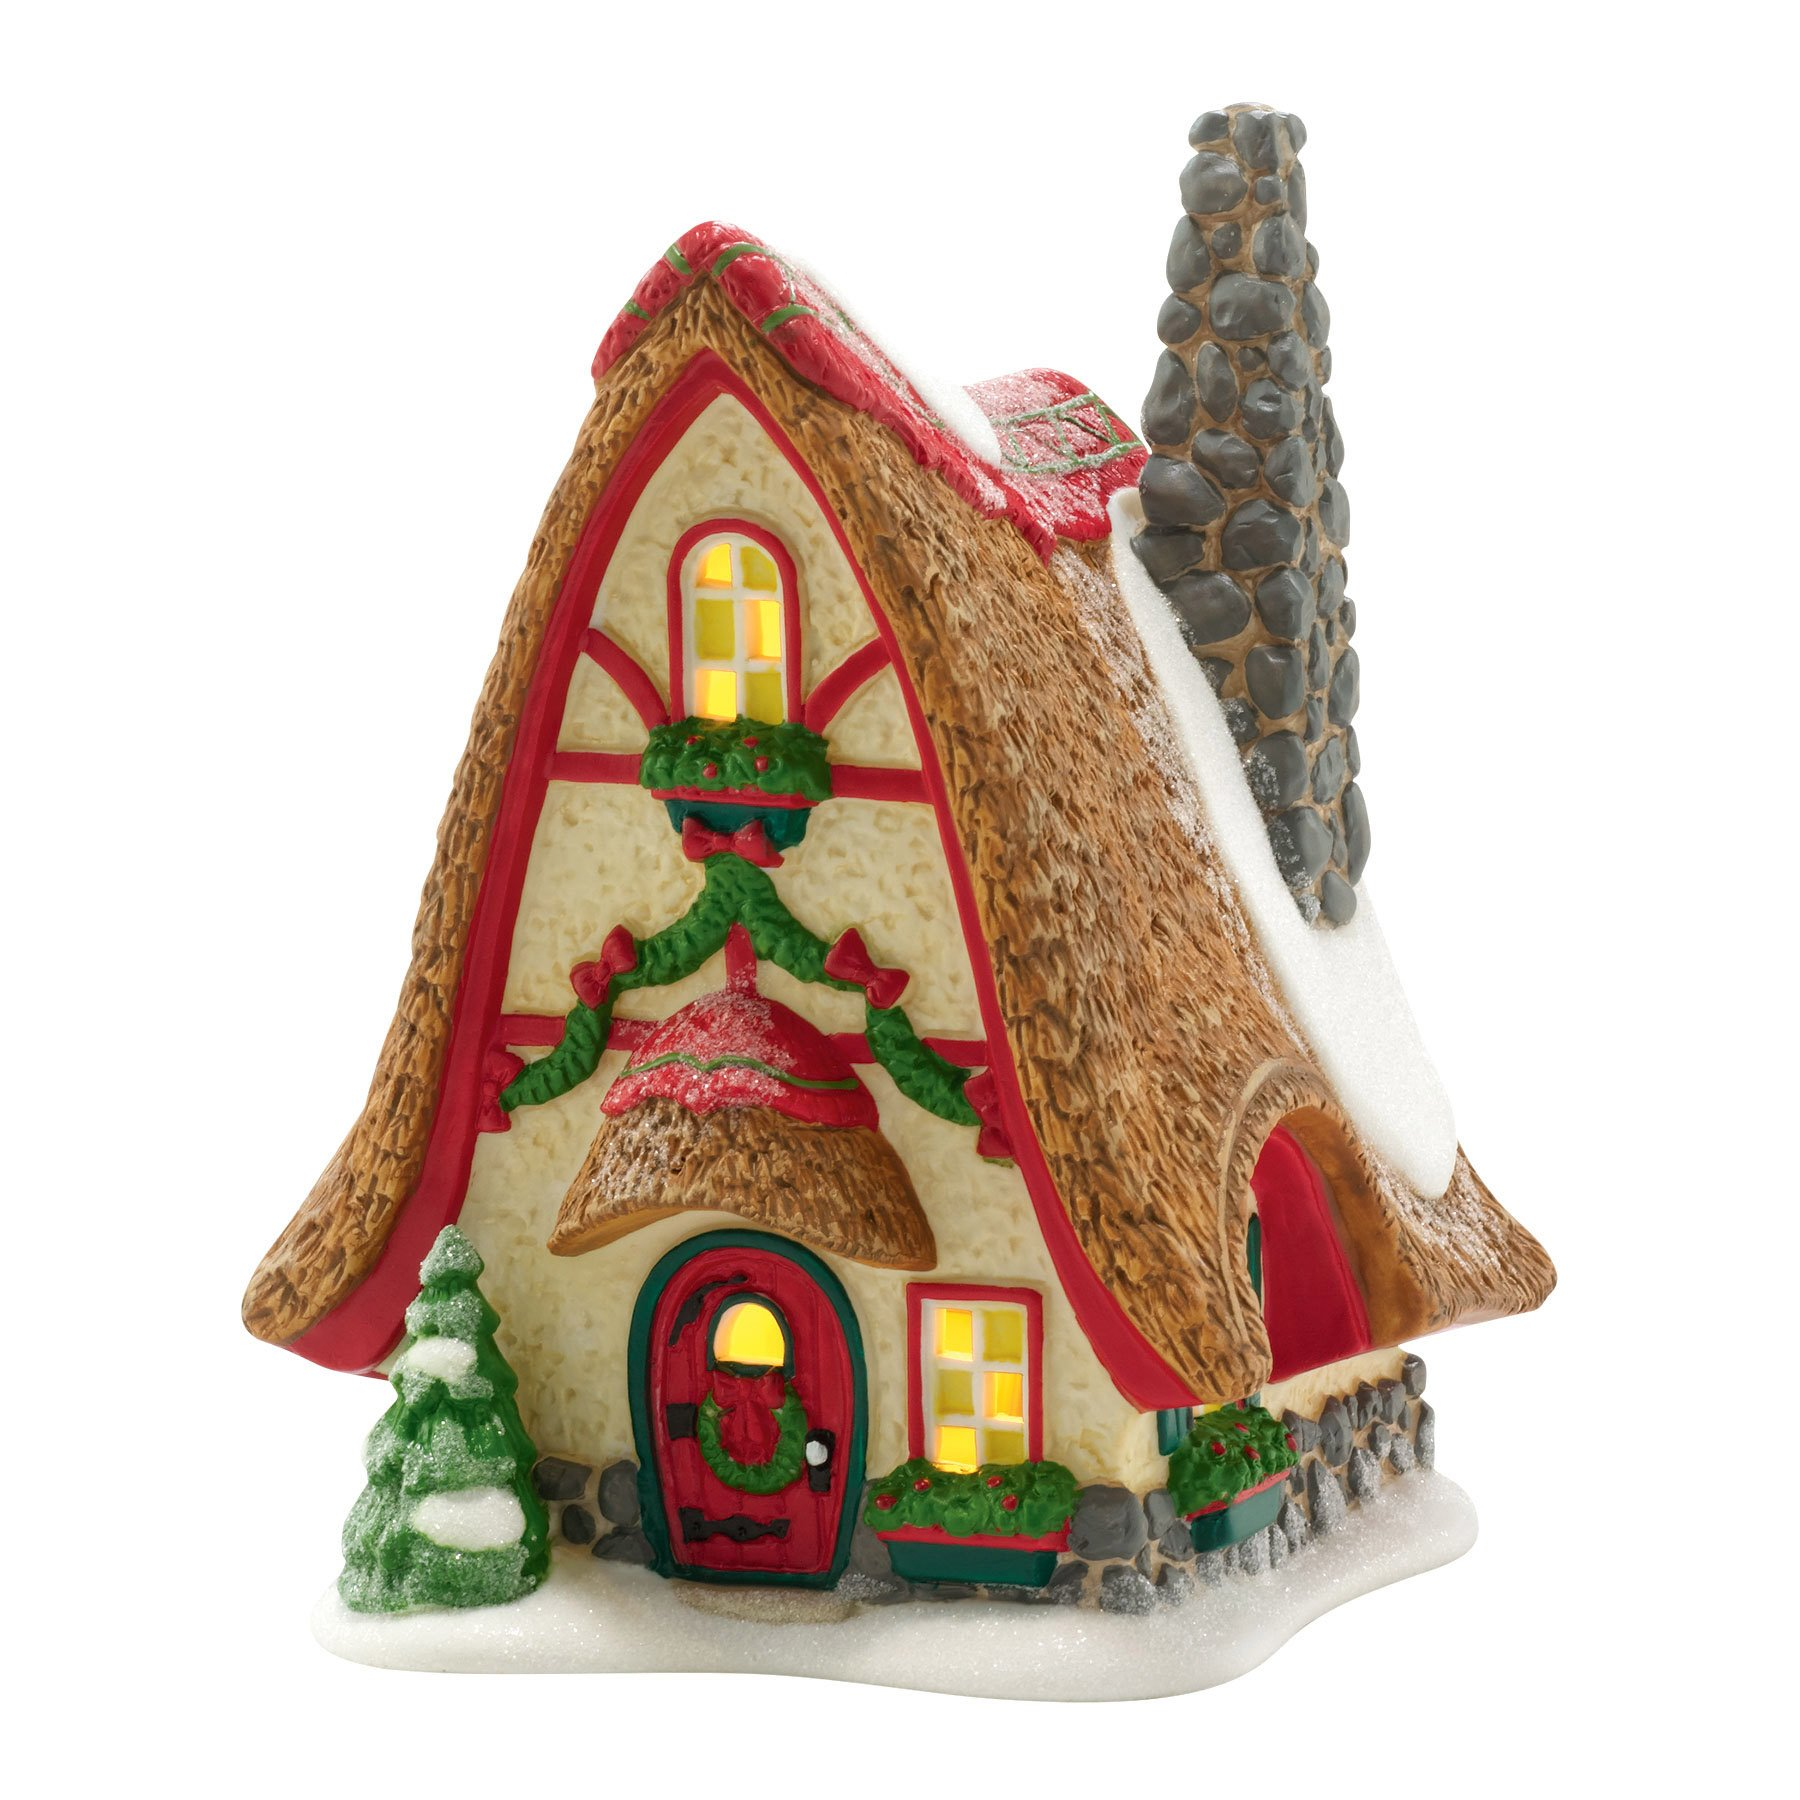 Department 56 North Pole Village Tinker's Tiny Home Lit House, 5.9 inch